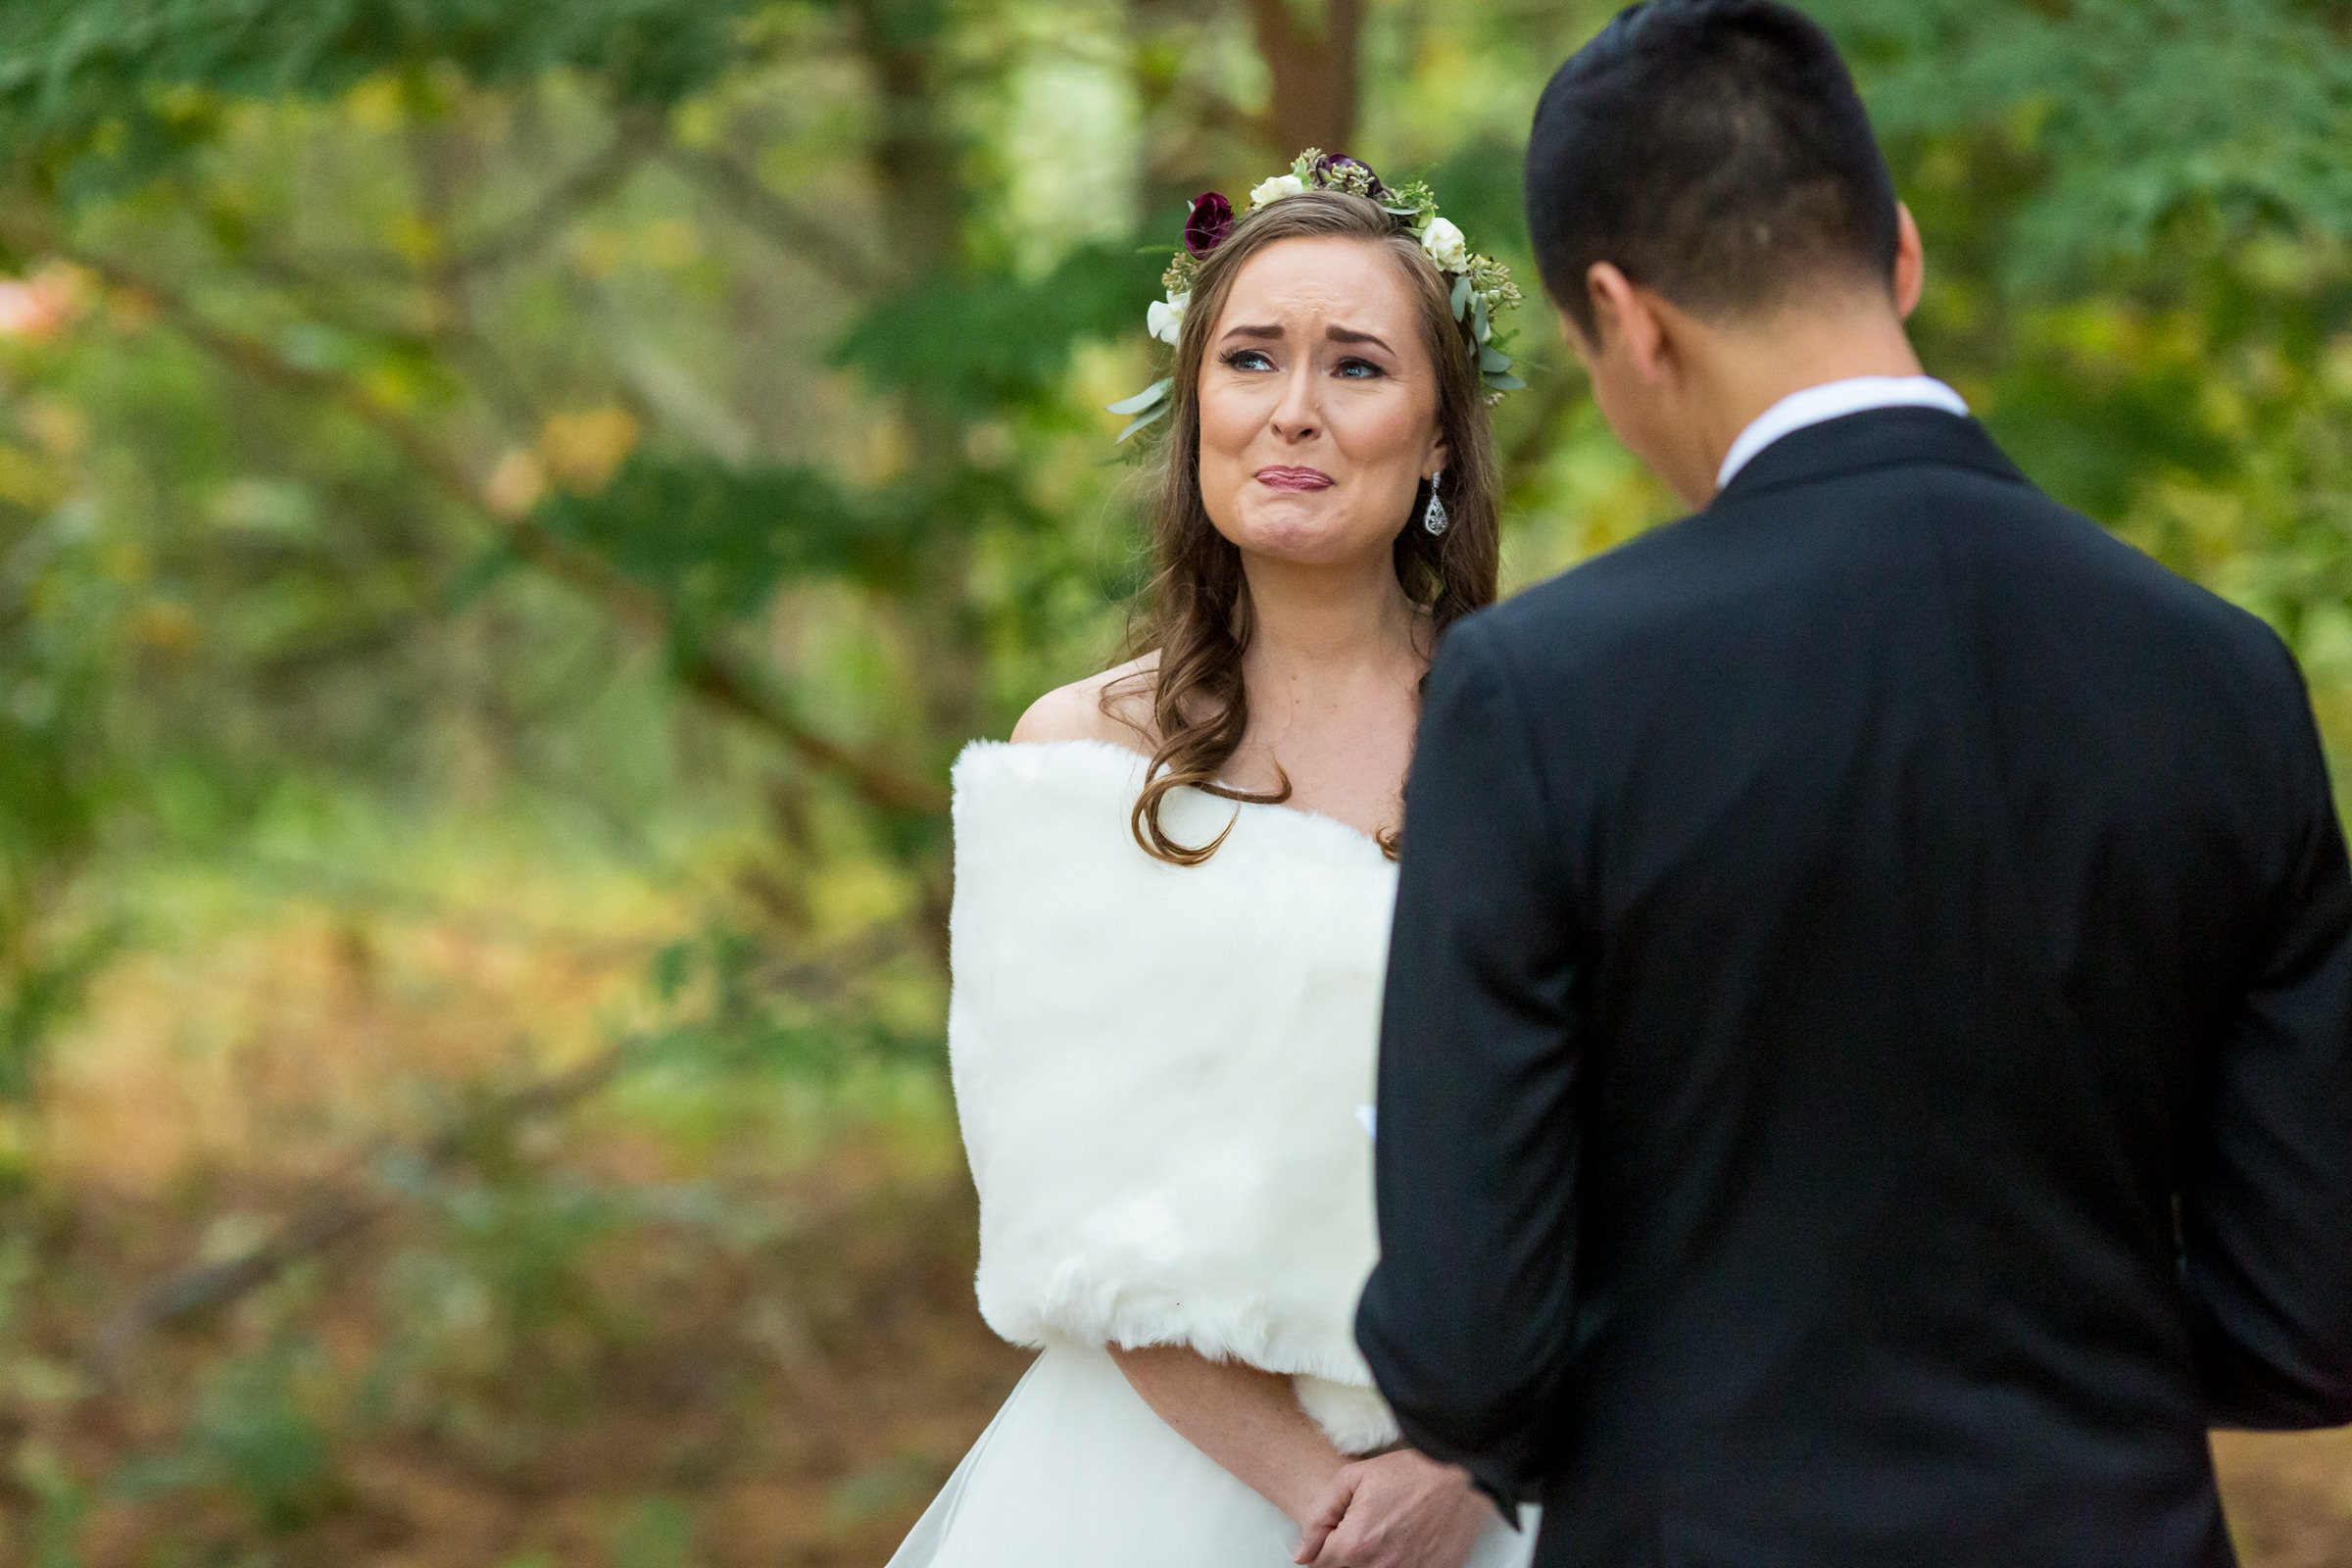 Emotional moment for bride at ceremony - photo by Procopio Photography